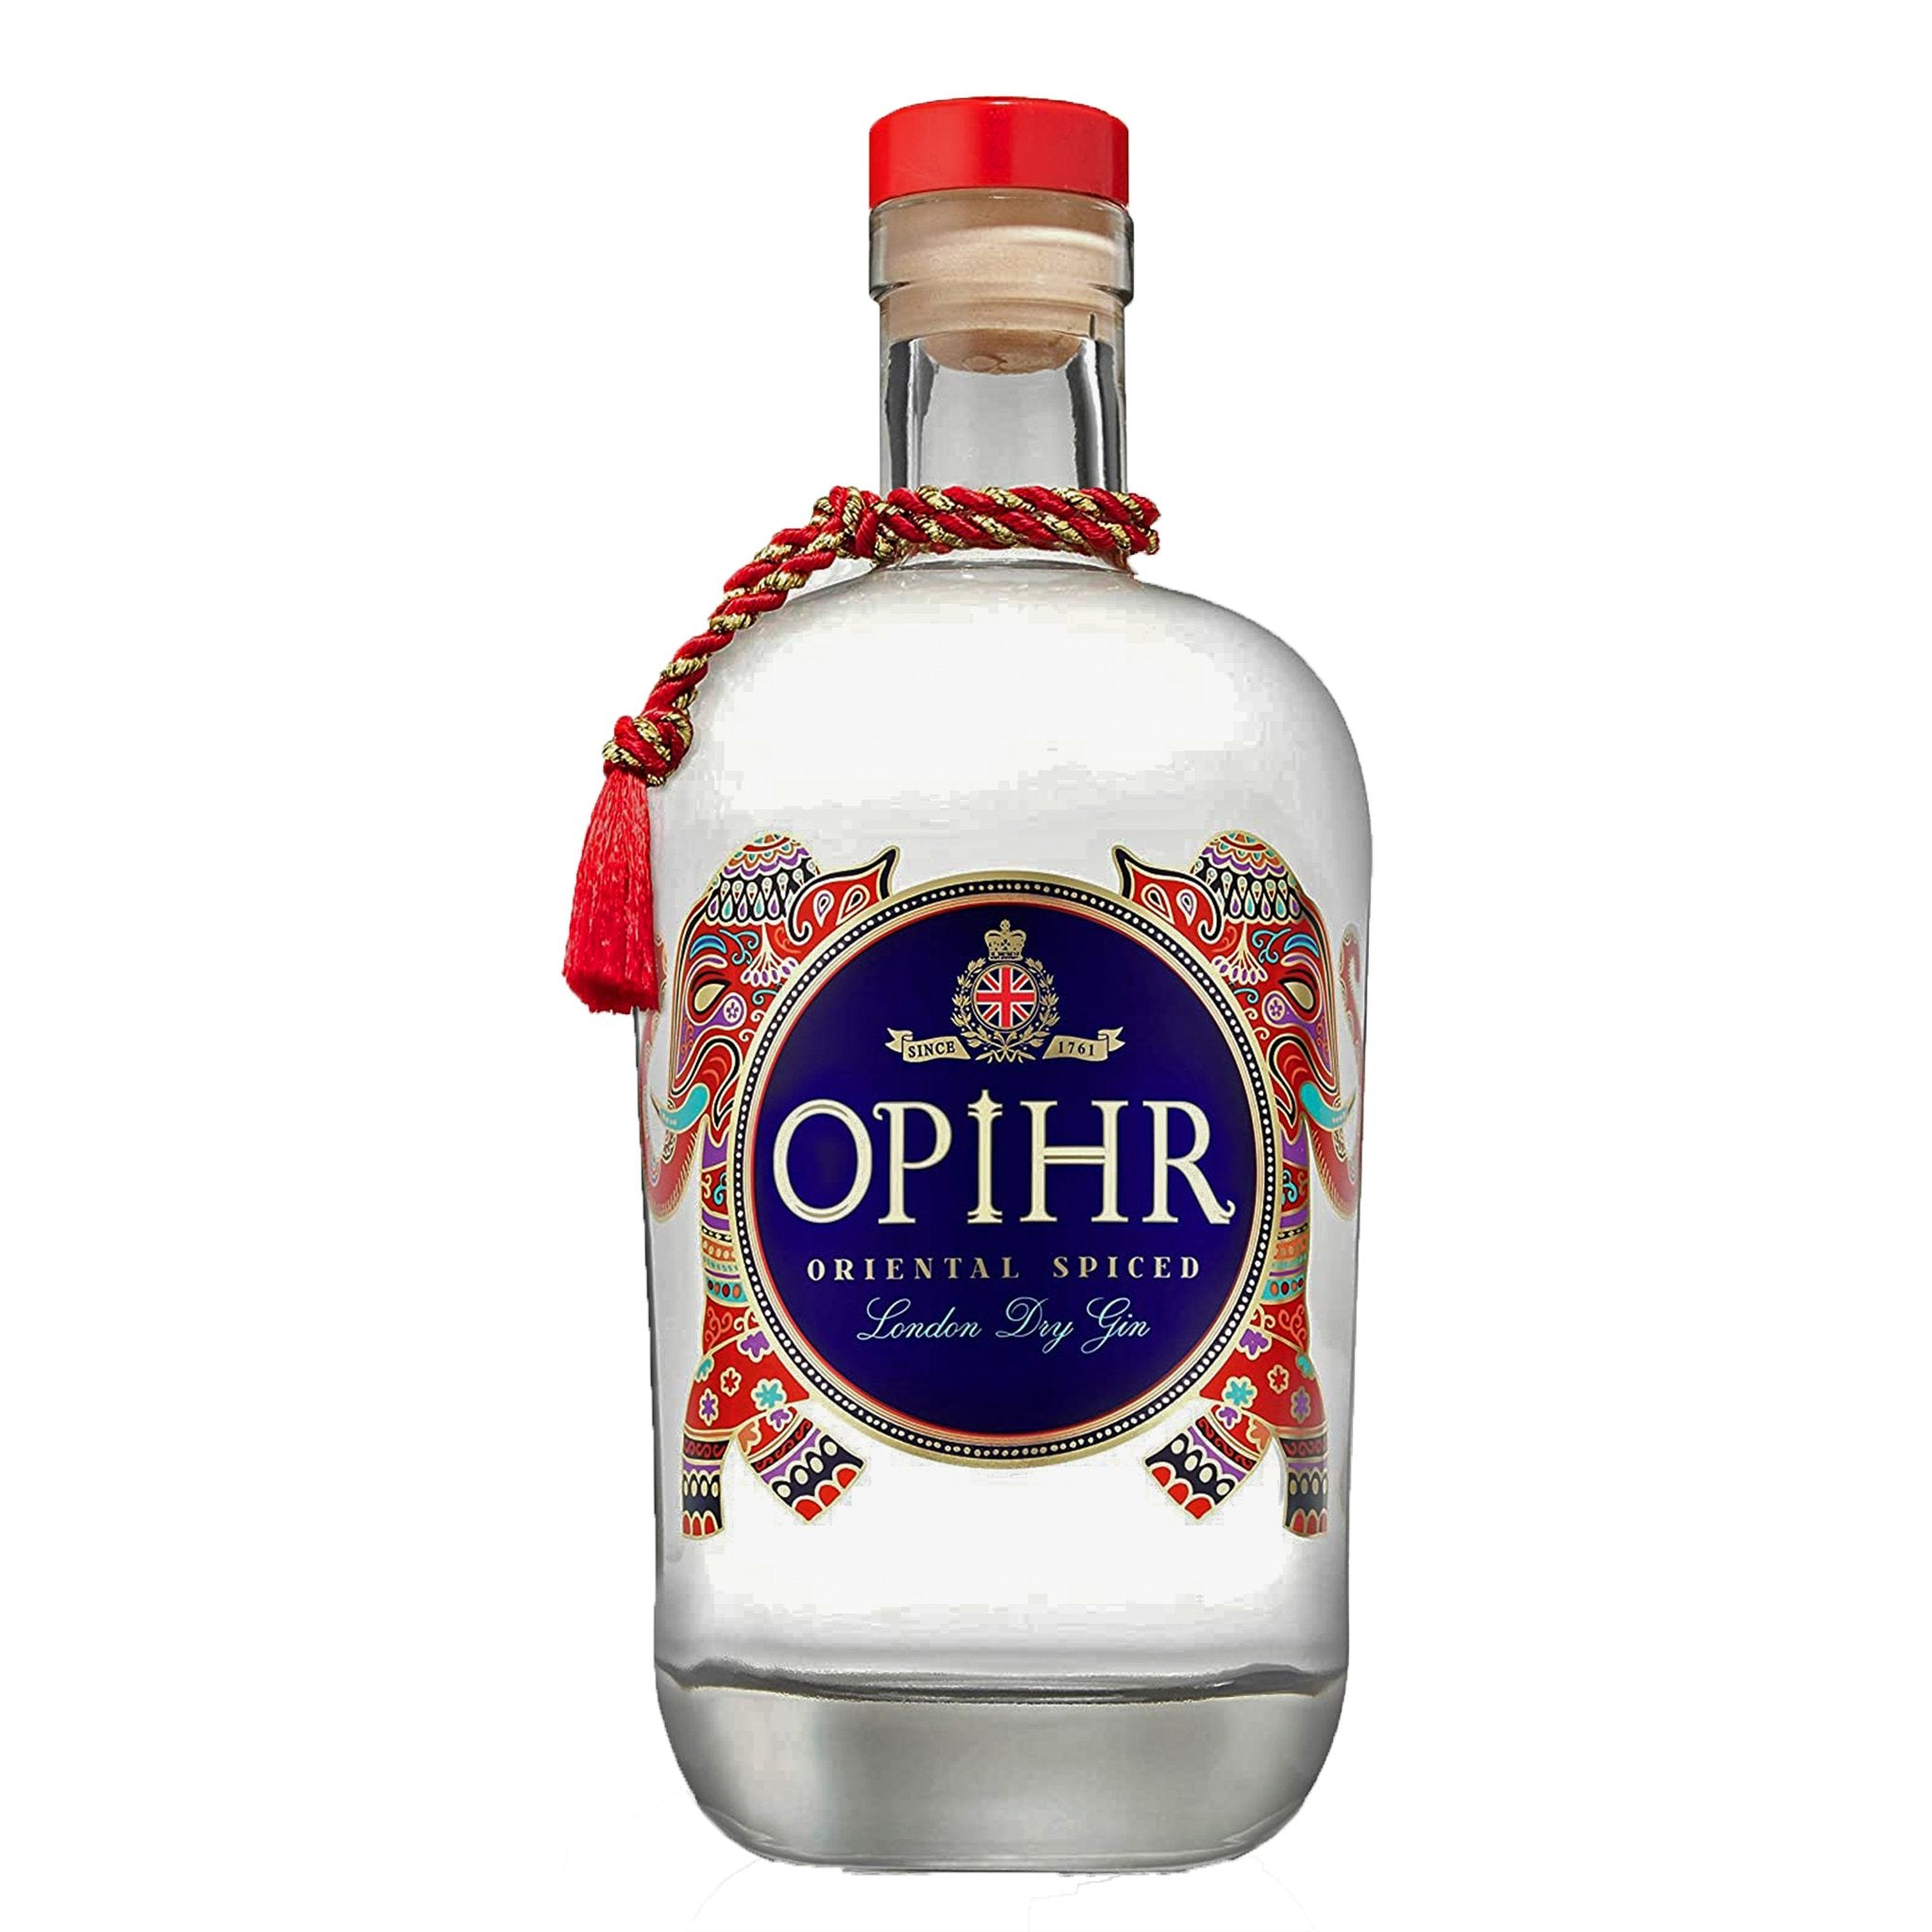 Opihr Oriental Spiced London Dry Gin 70cl, Gin - Image 0